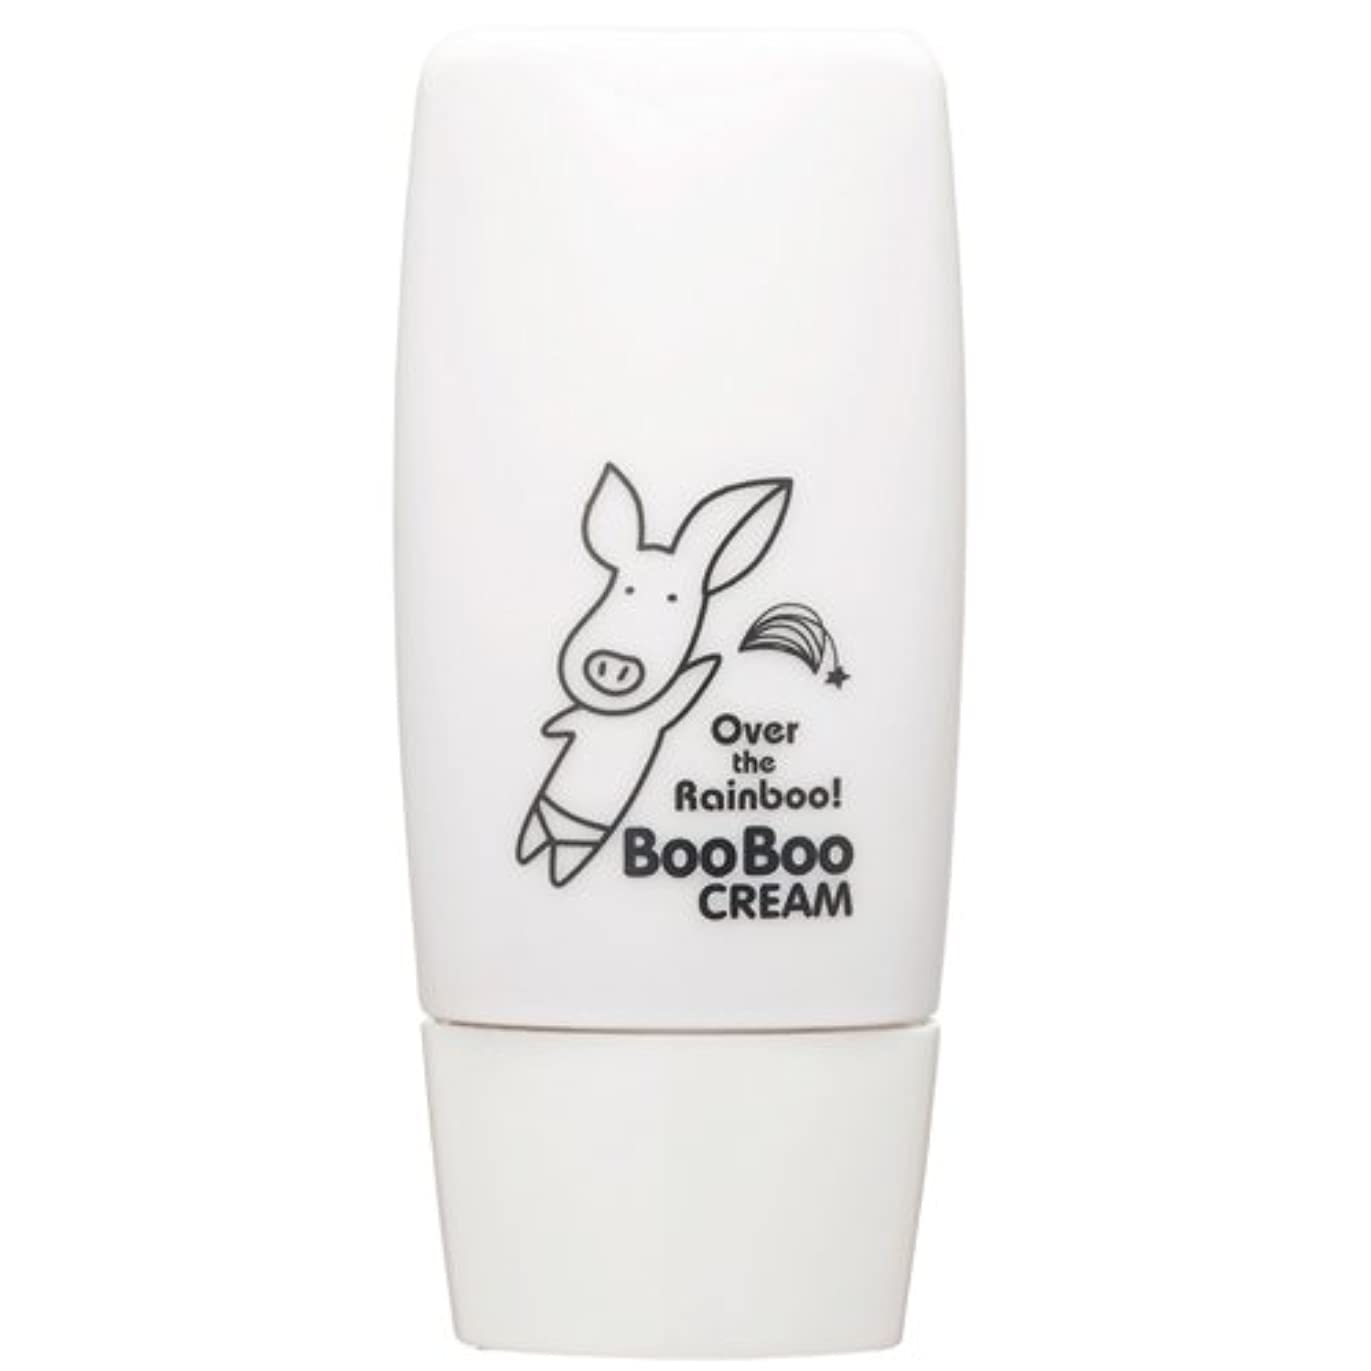 衝撃香り無効にするOver the Rainboo! Boo Boo CREAM